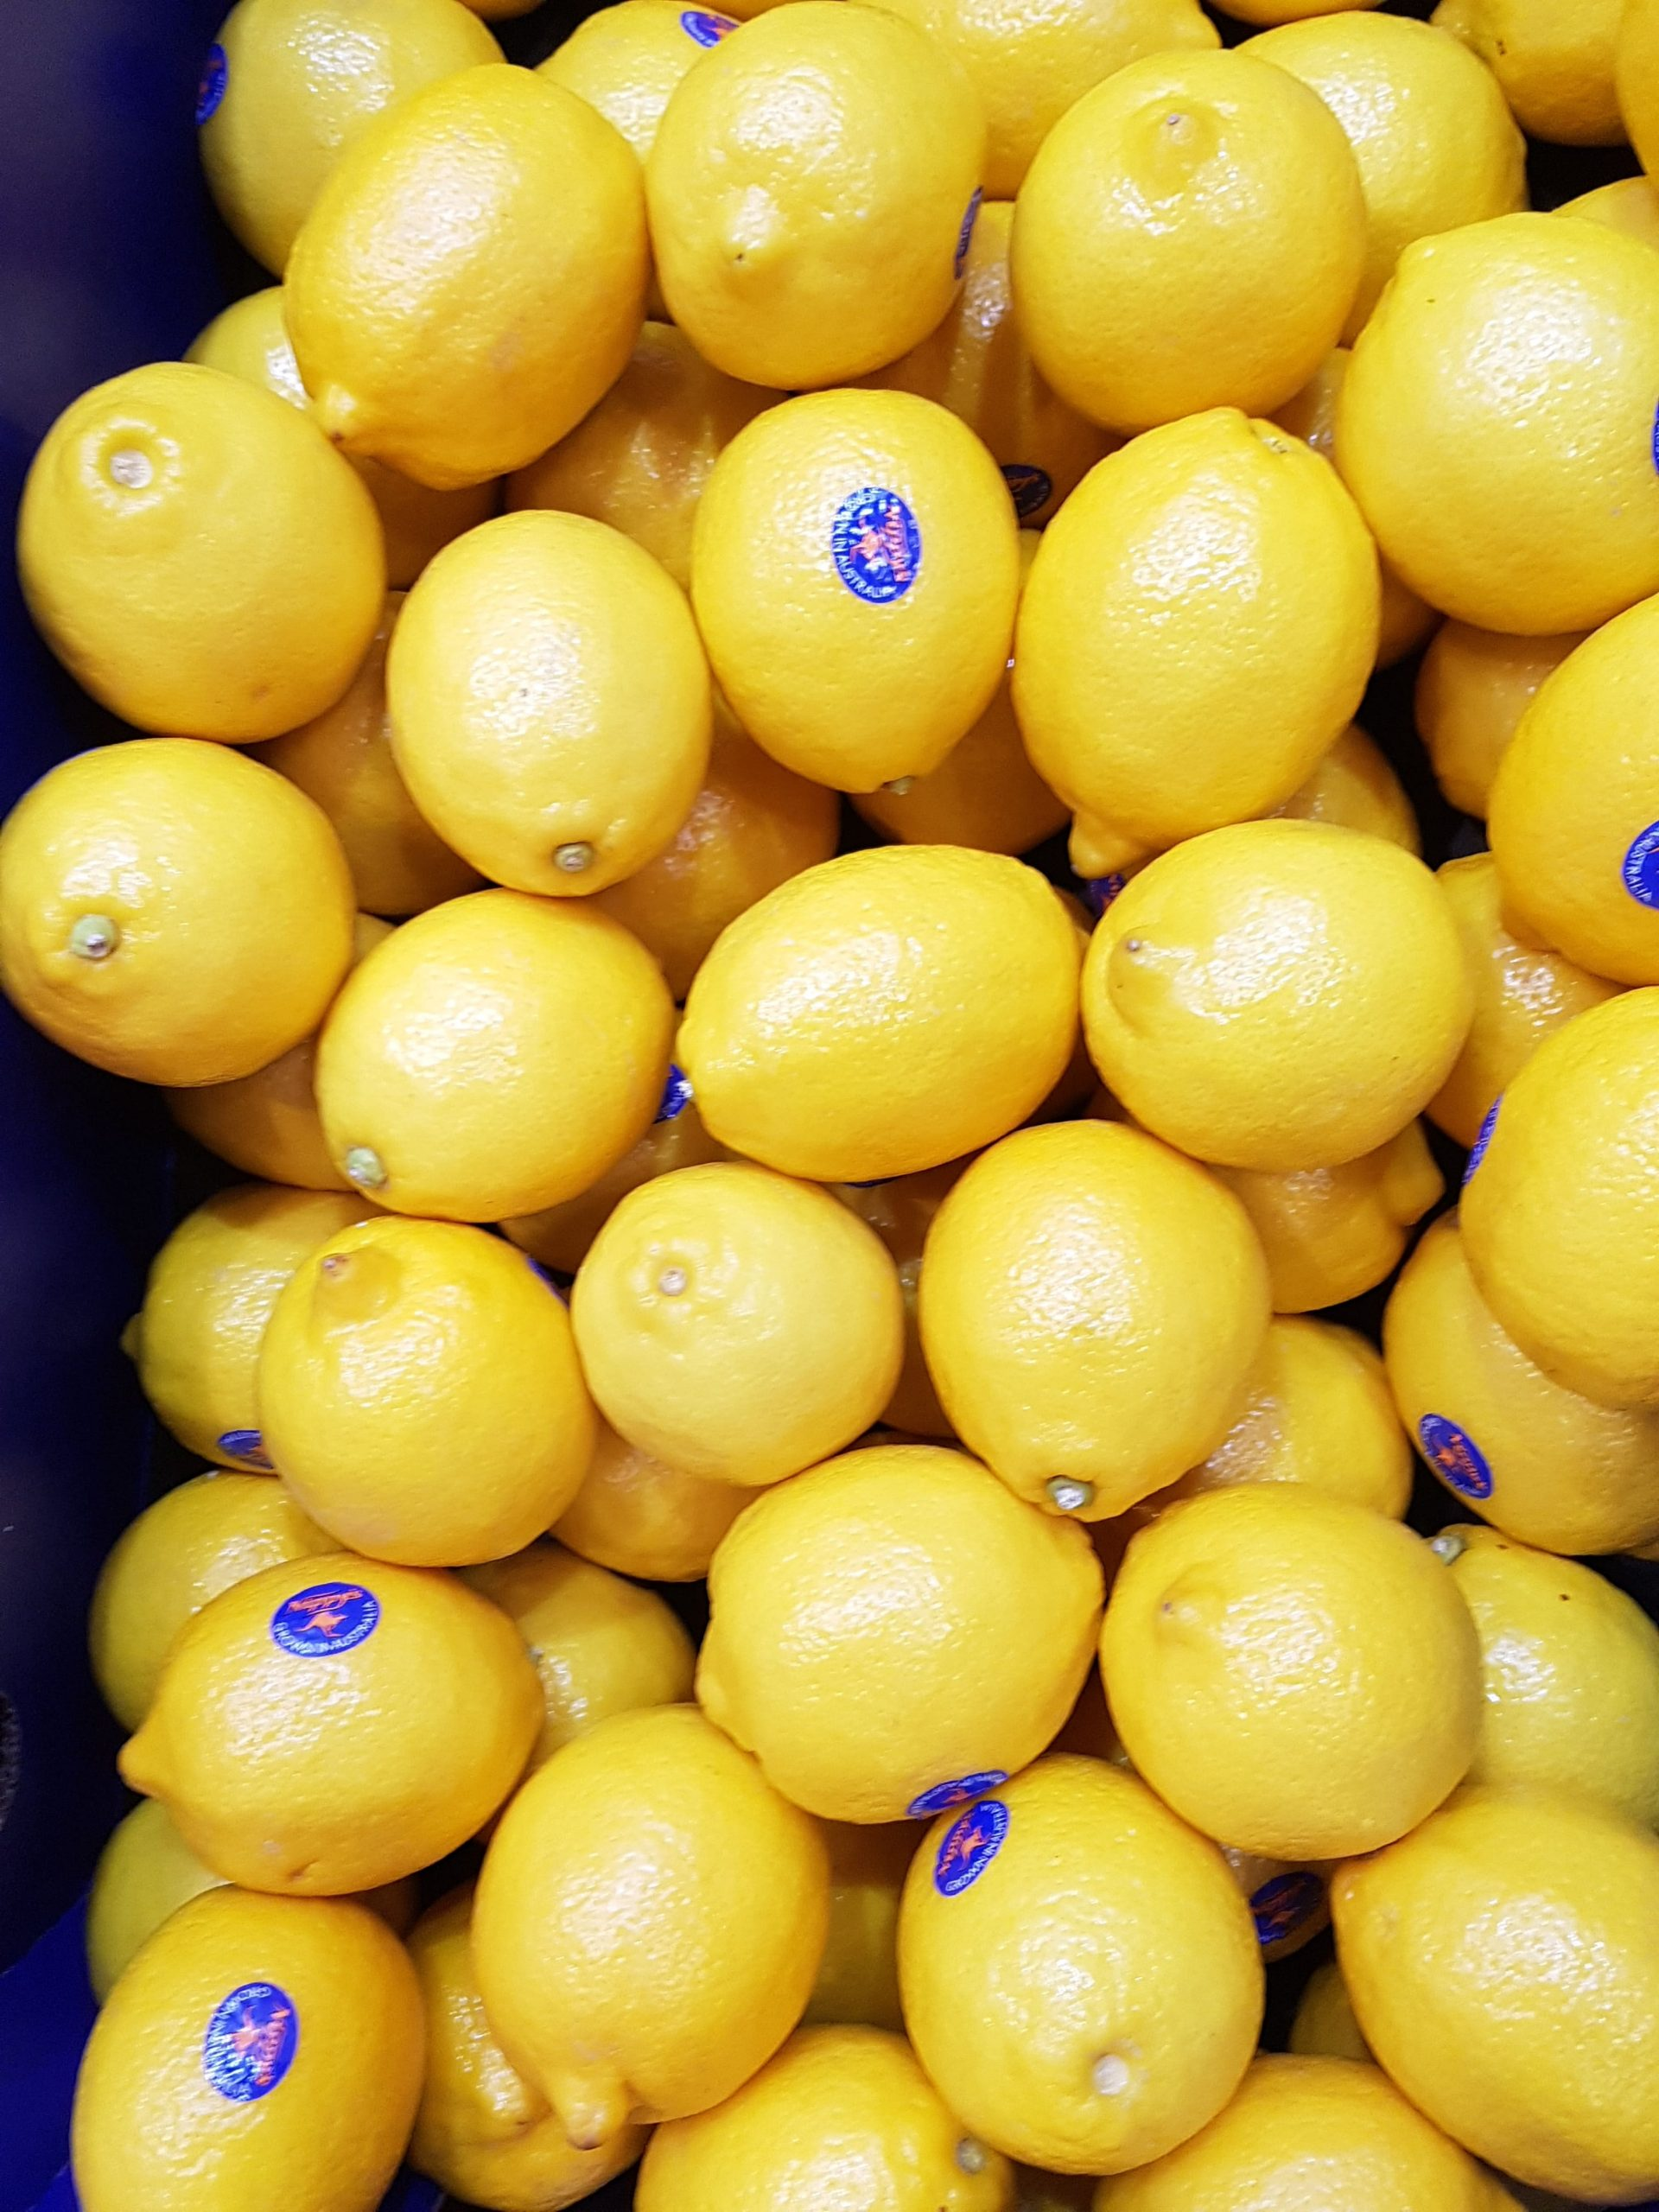 Southern African citrus to reach new heights as 2021 export estimate is released